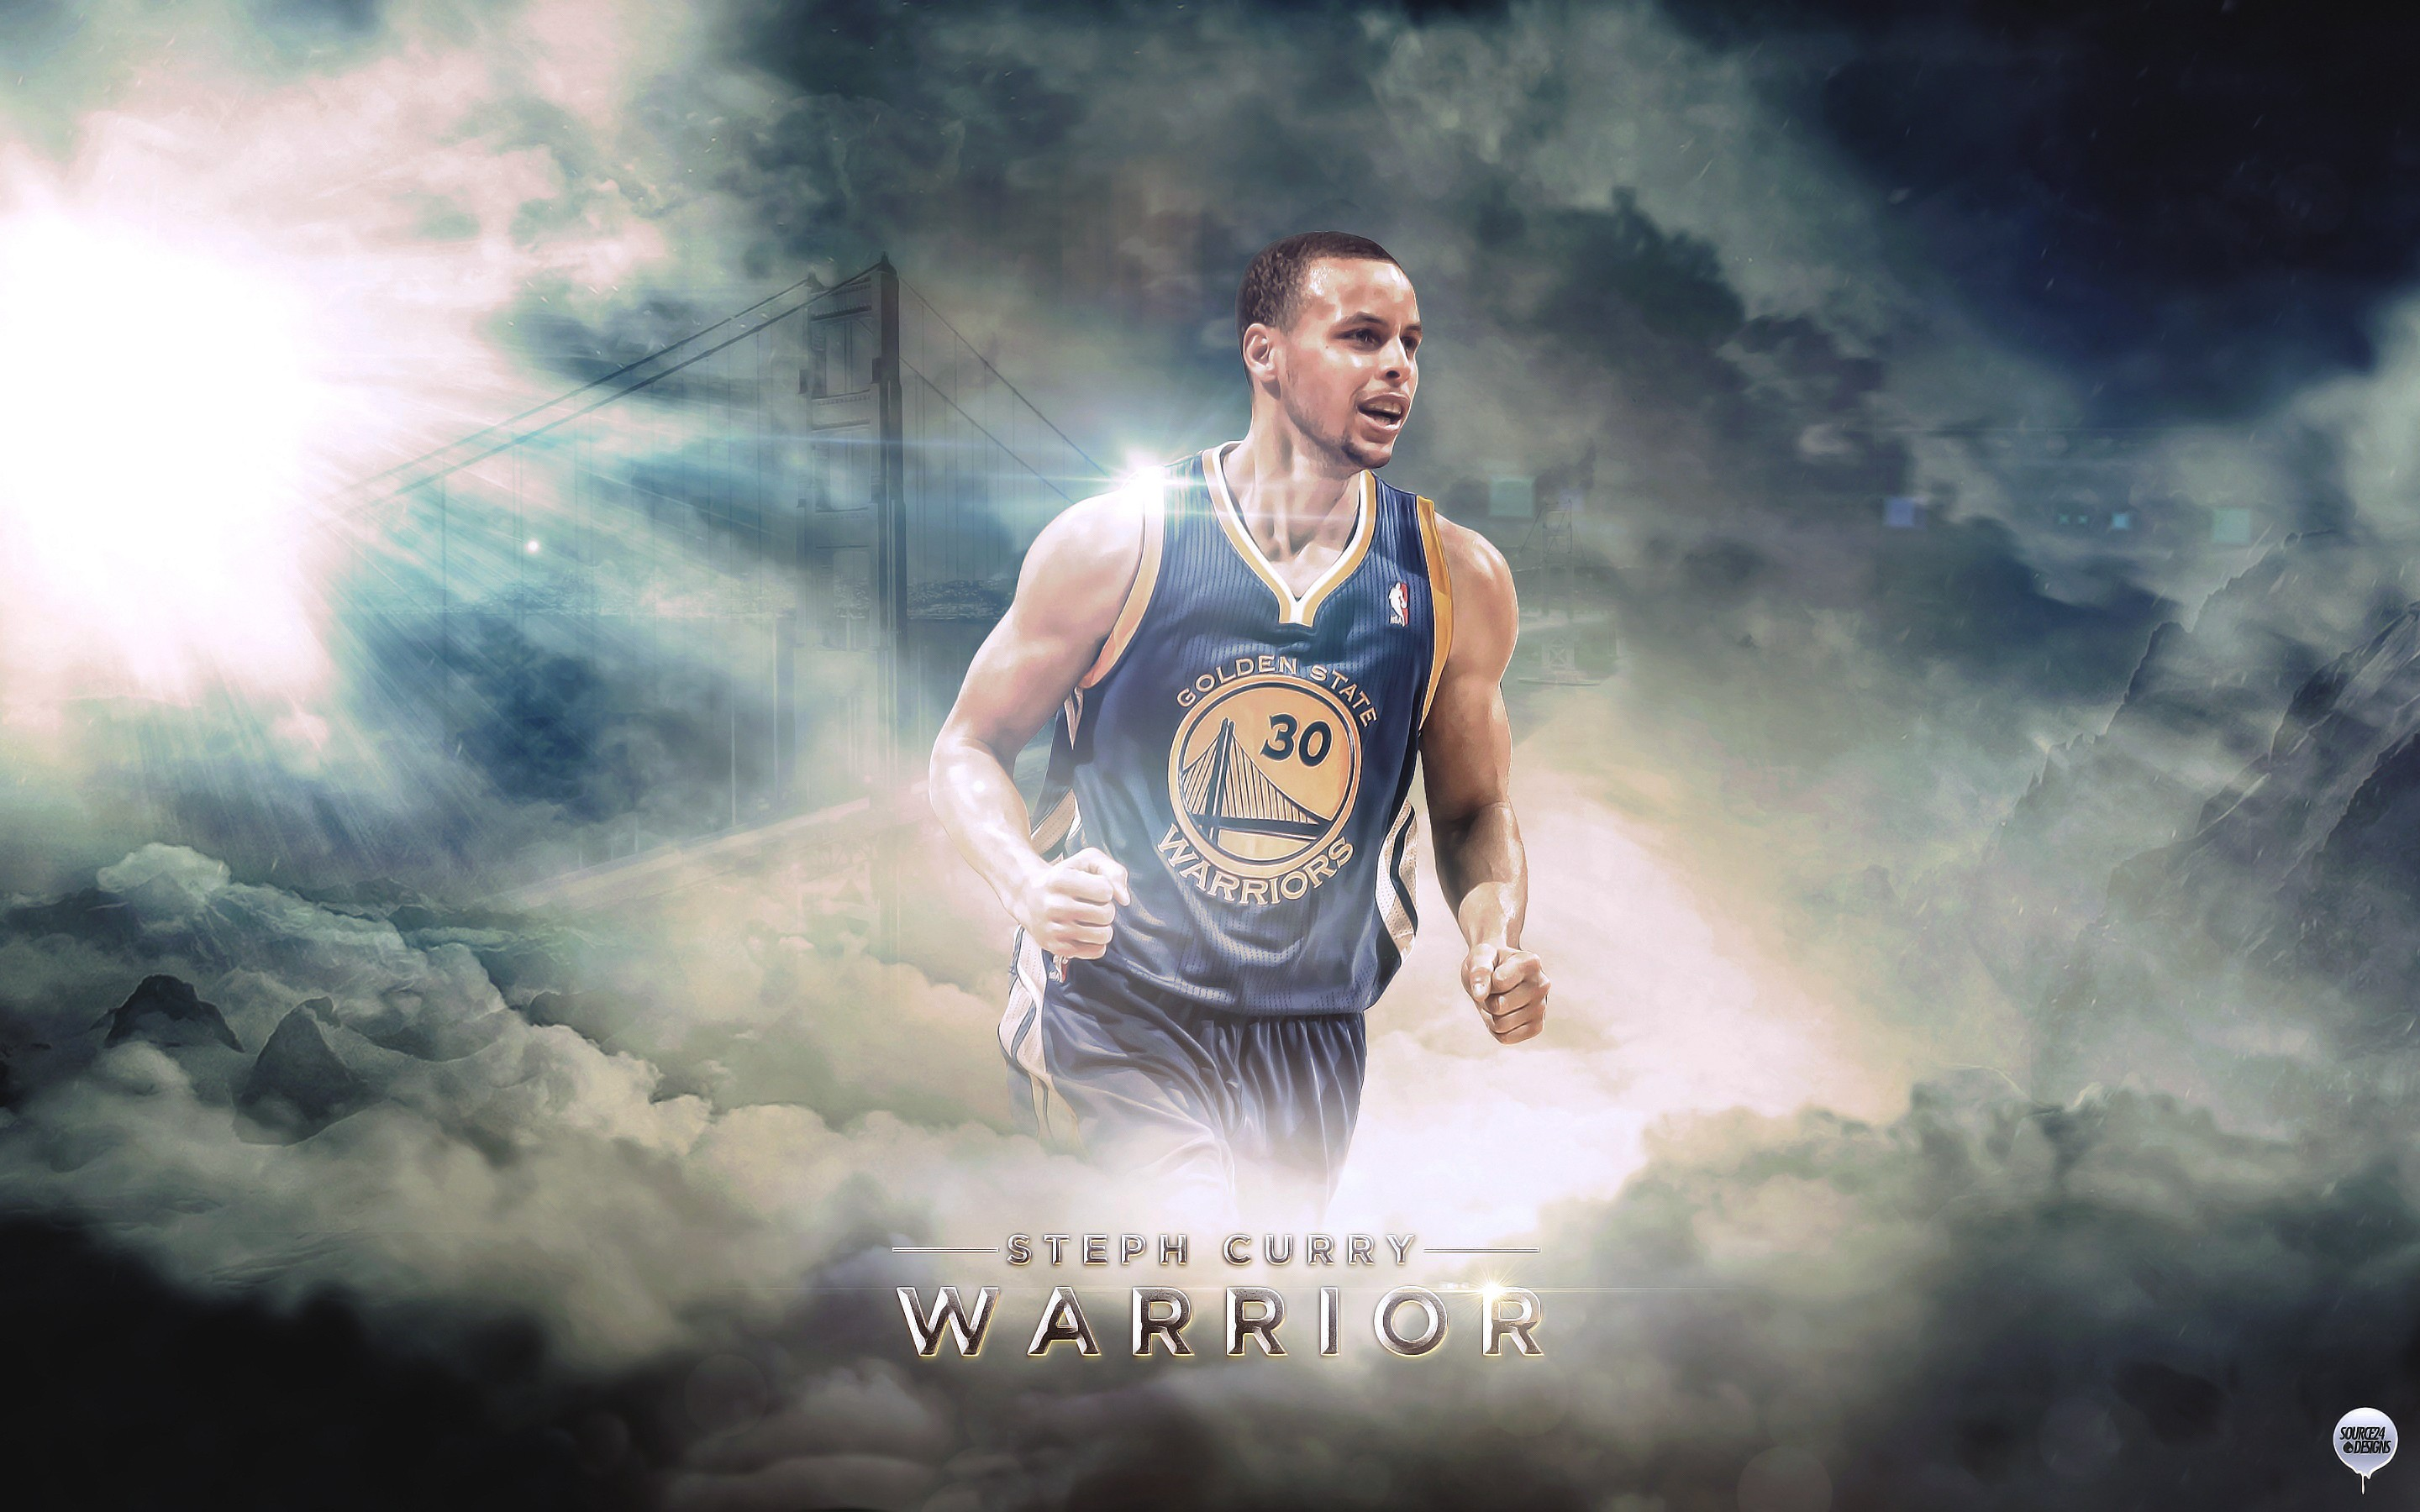 Lebron James Iphone Wallpaper Stephen Curry Basketball Player Wallpapers Hd Wallpapers